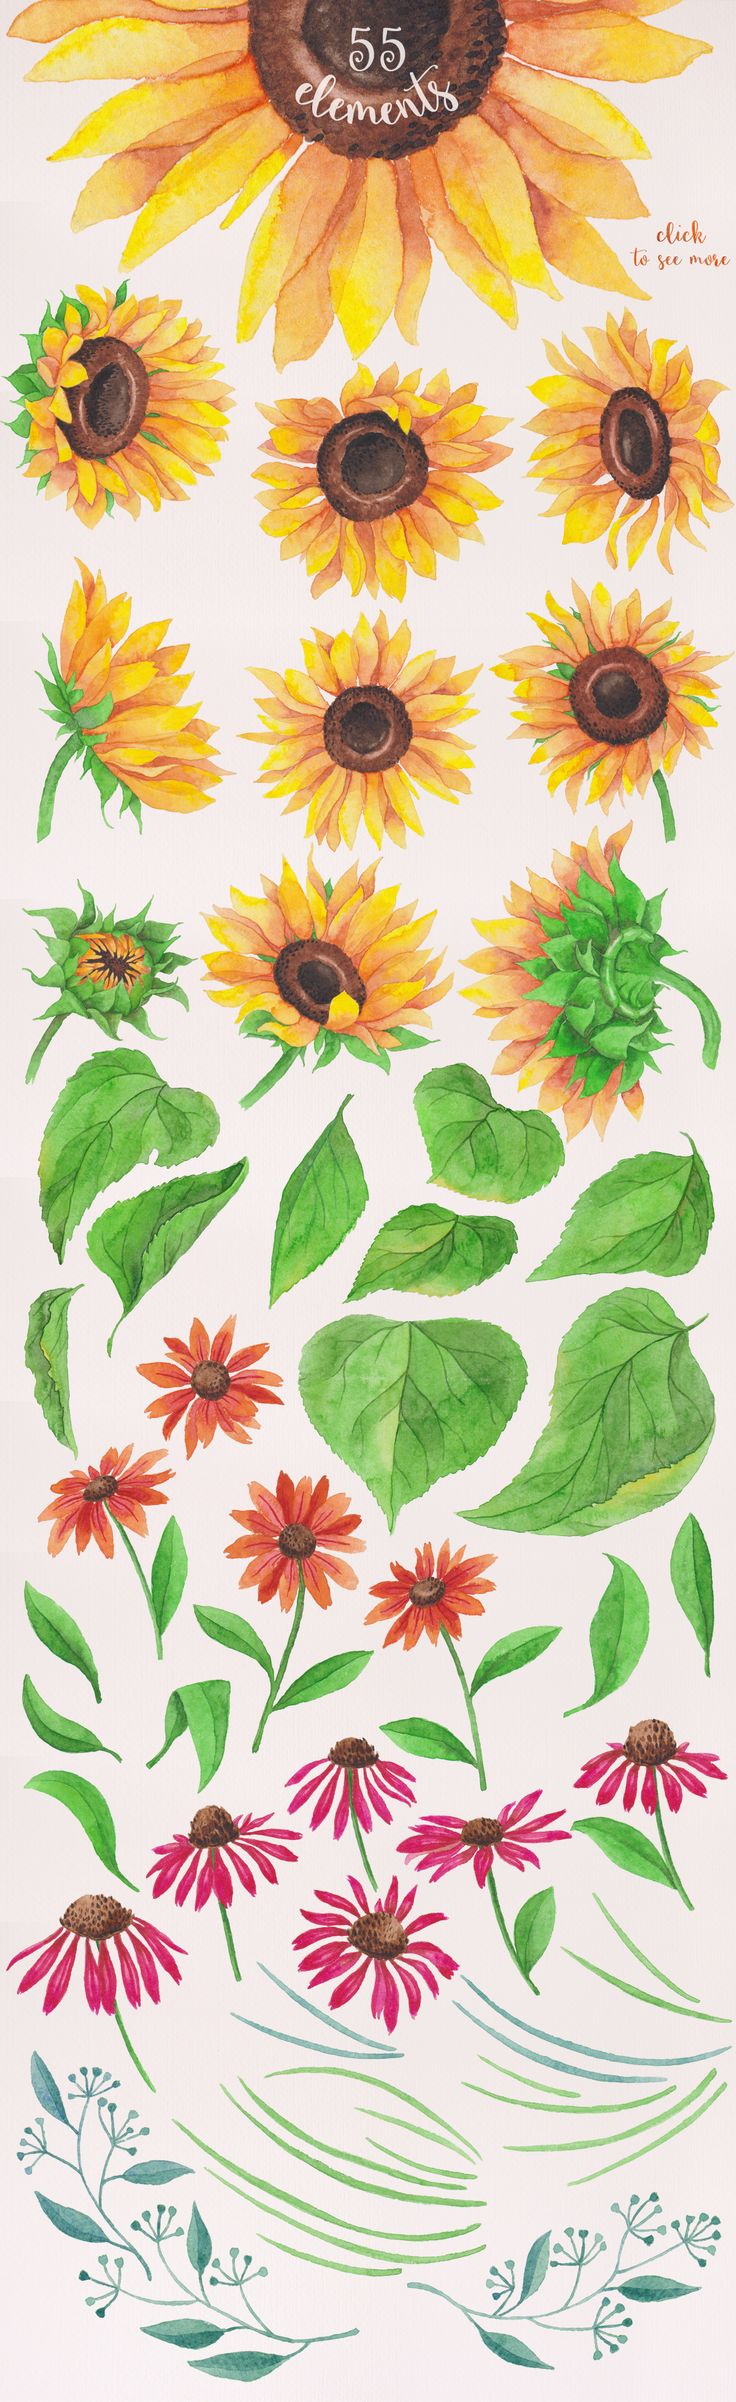 Watercolor Sunflowers by Stella's Graphic Supply on Creative Market